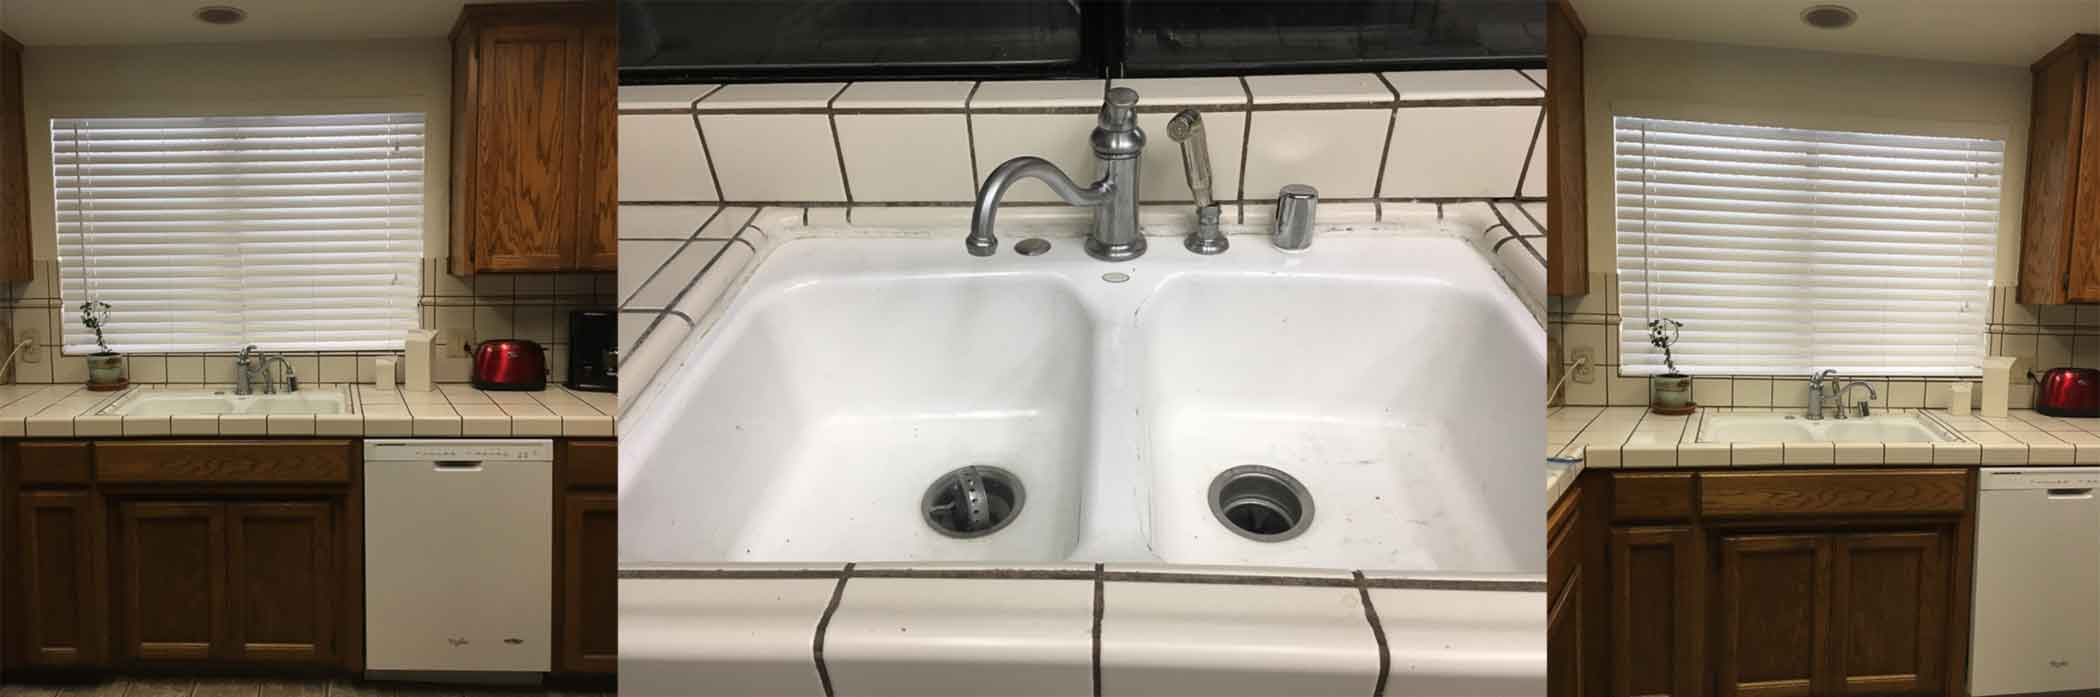 Before And After Rockwell Copper Double Basin Farmhouse Sink Sinkology